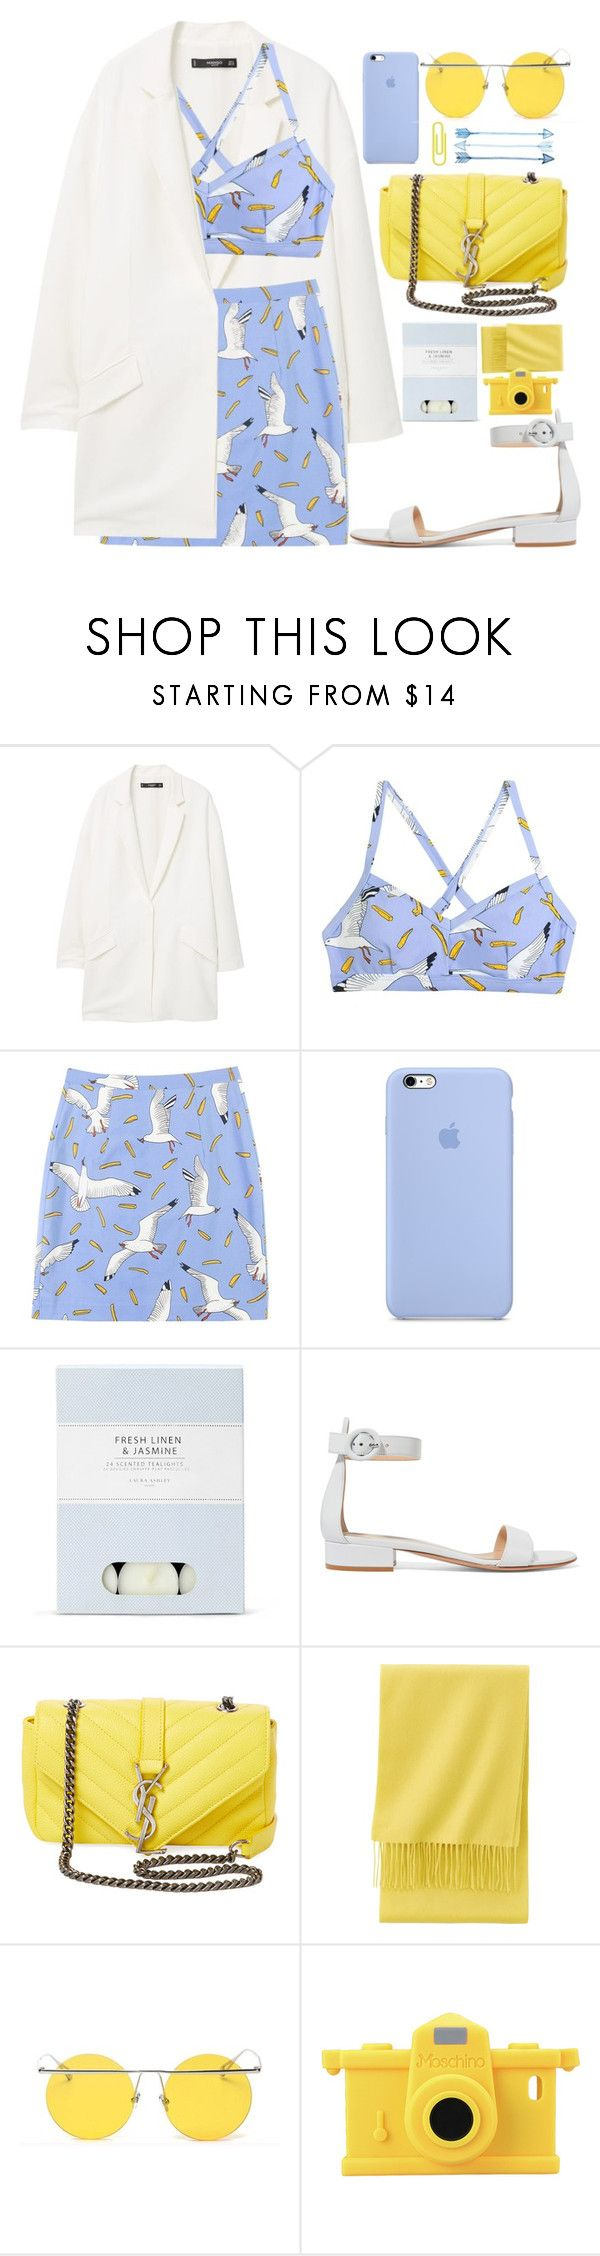 """""Homie"" ft Meek Mill"" by tamaramanhardt ❤ liked on Polyvore featuring MANGO, Laura Ashley, Gianvito Rossi, Yves Saint Laurent, Uniqlo, LMNT, Moschino and vintage"